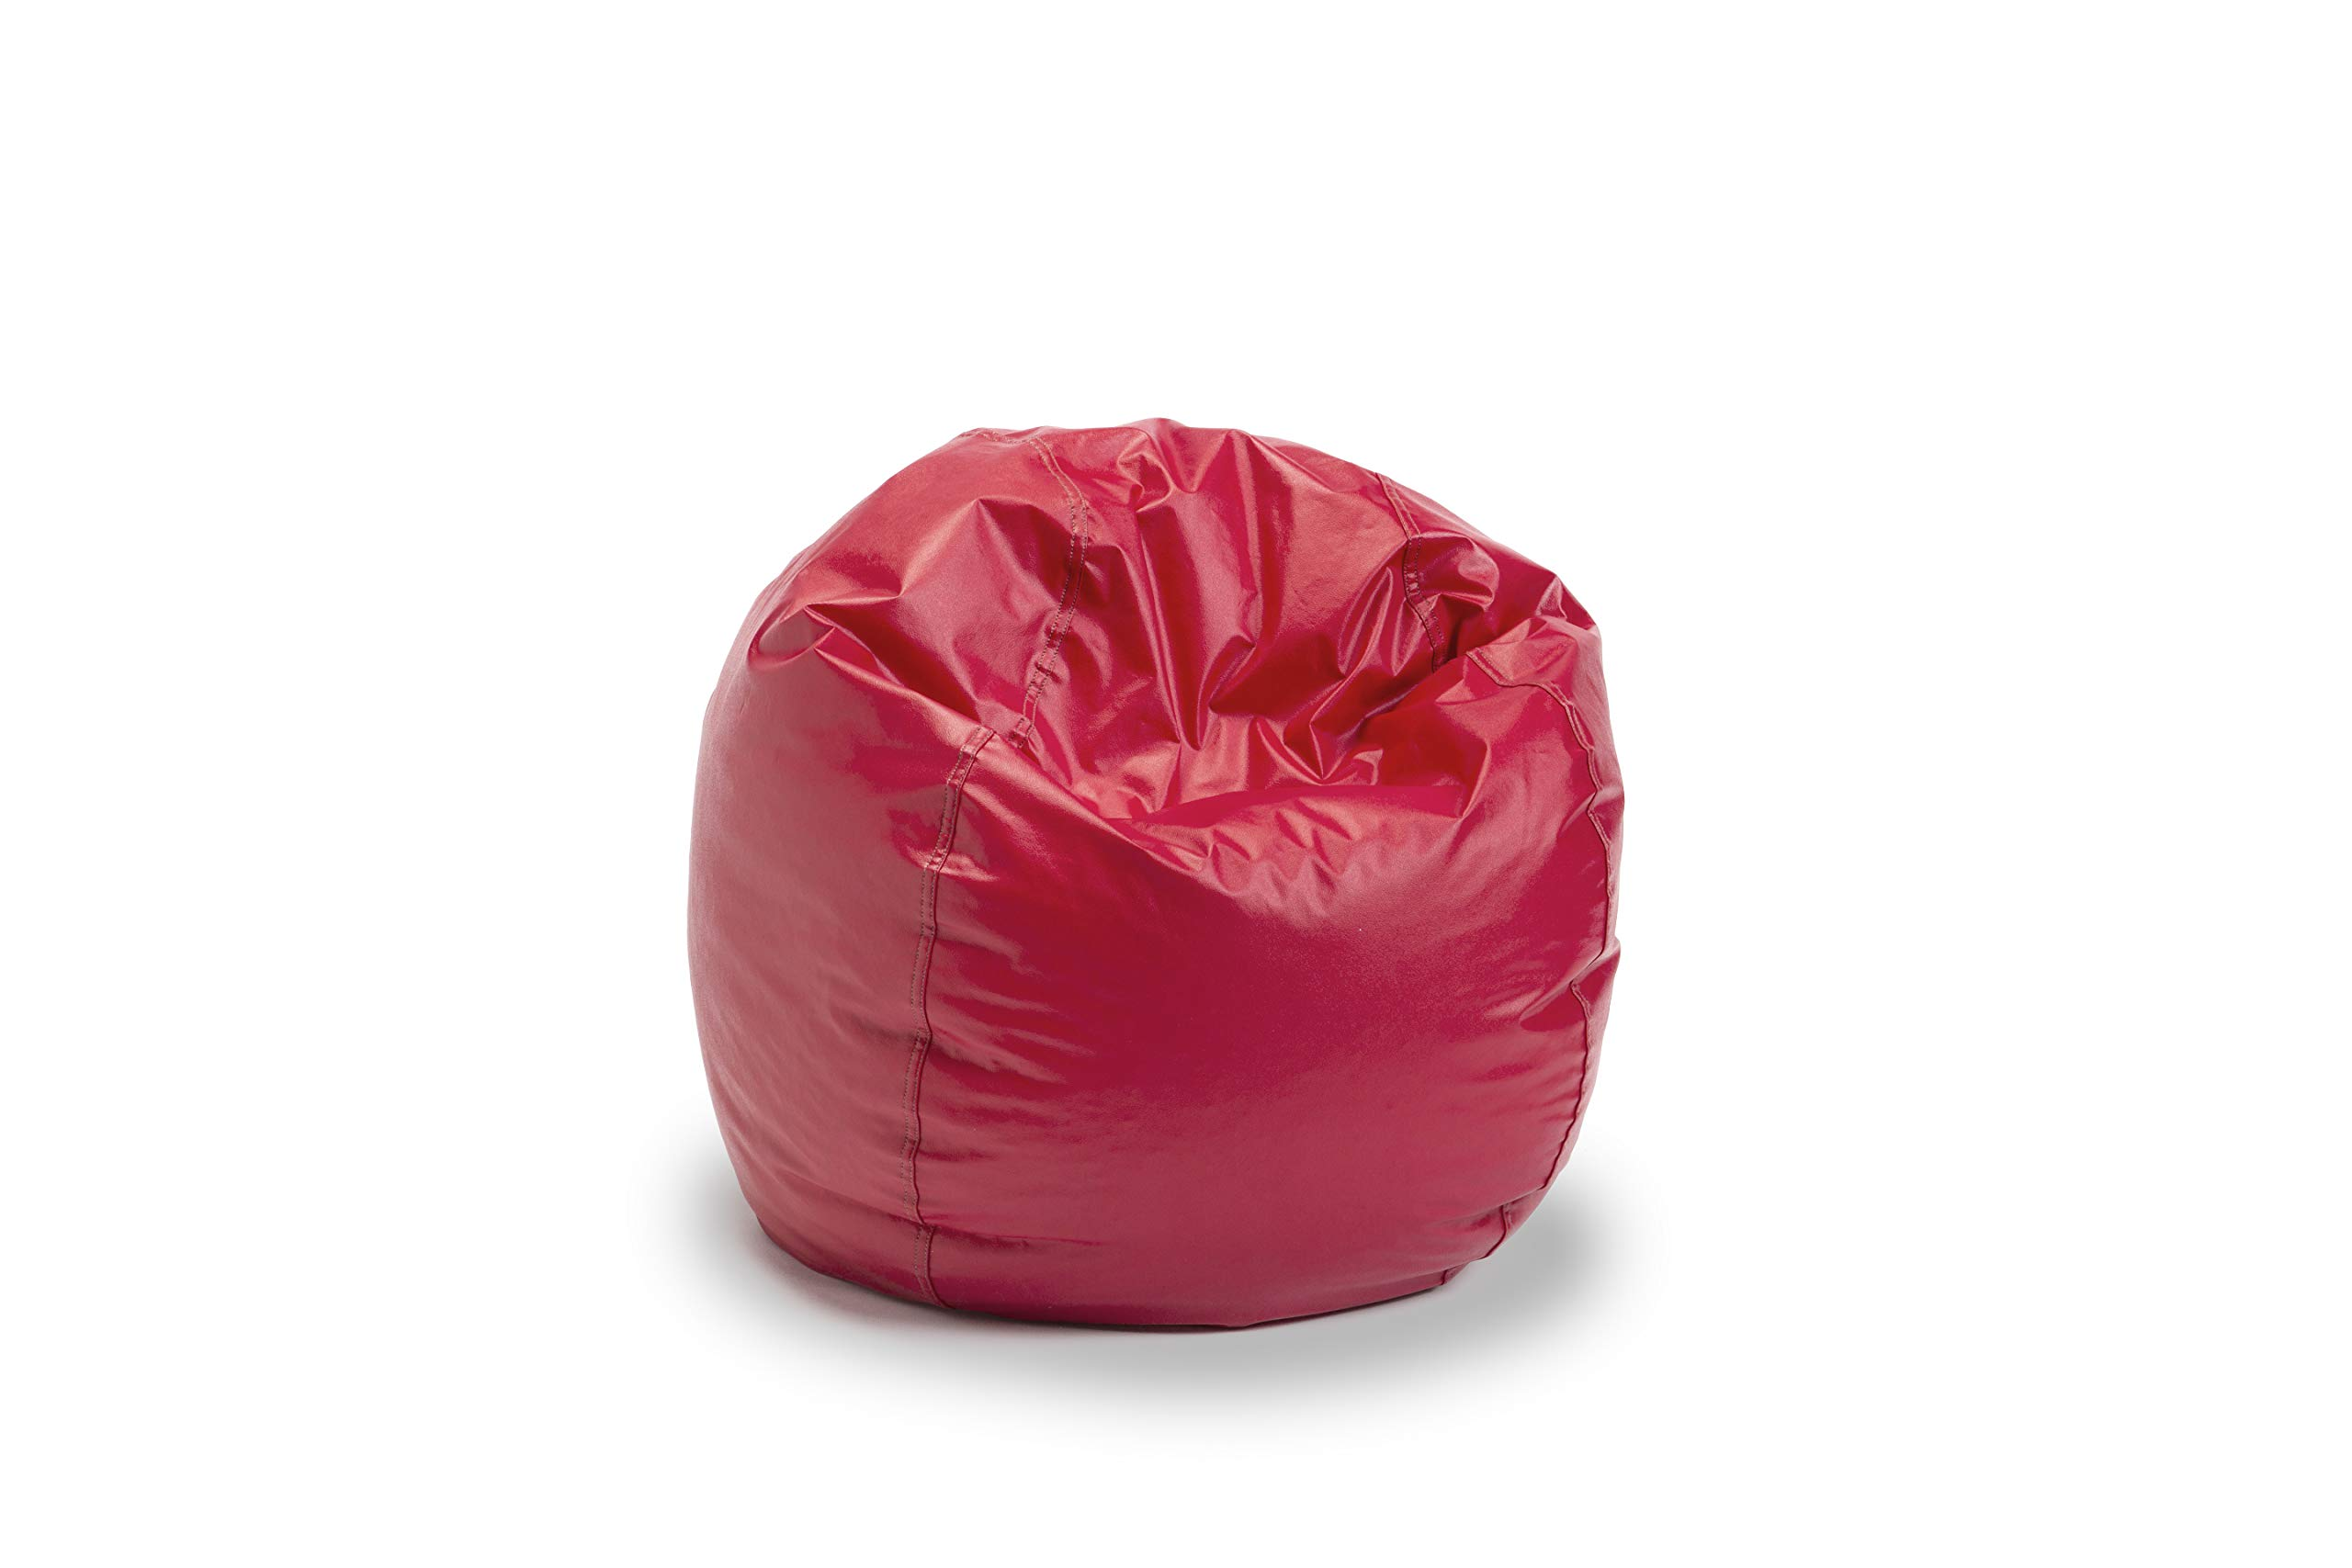 Bigger and Better! Child Size Bean Bag Chair (Red), 100% American Made by American Bean Bag Chairs